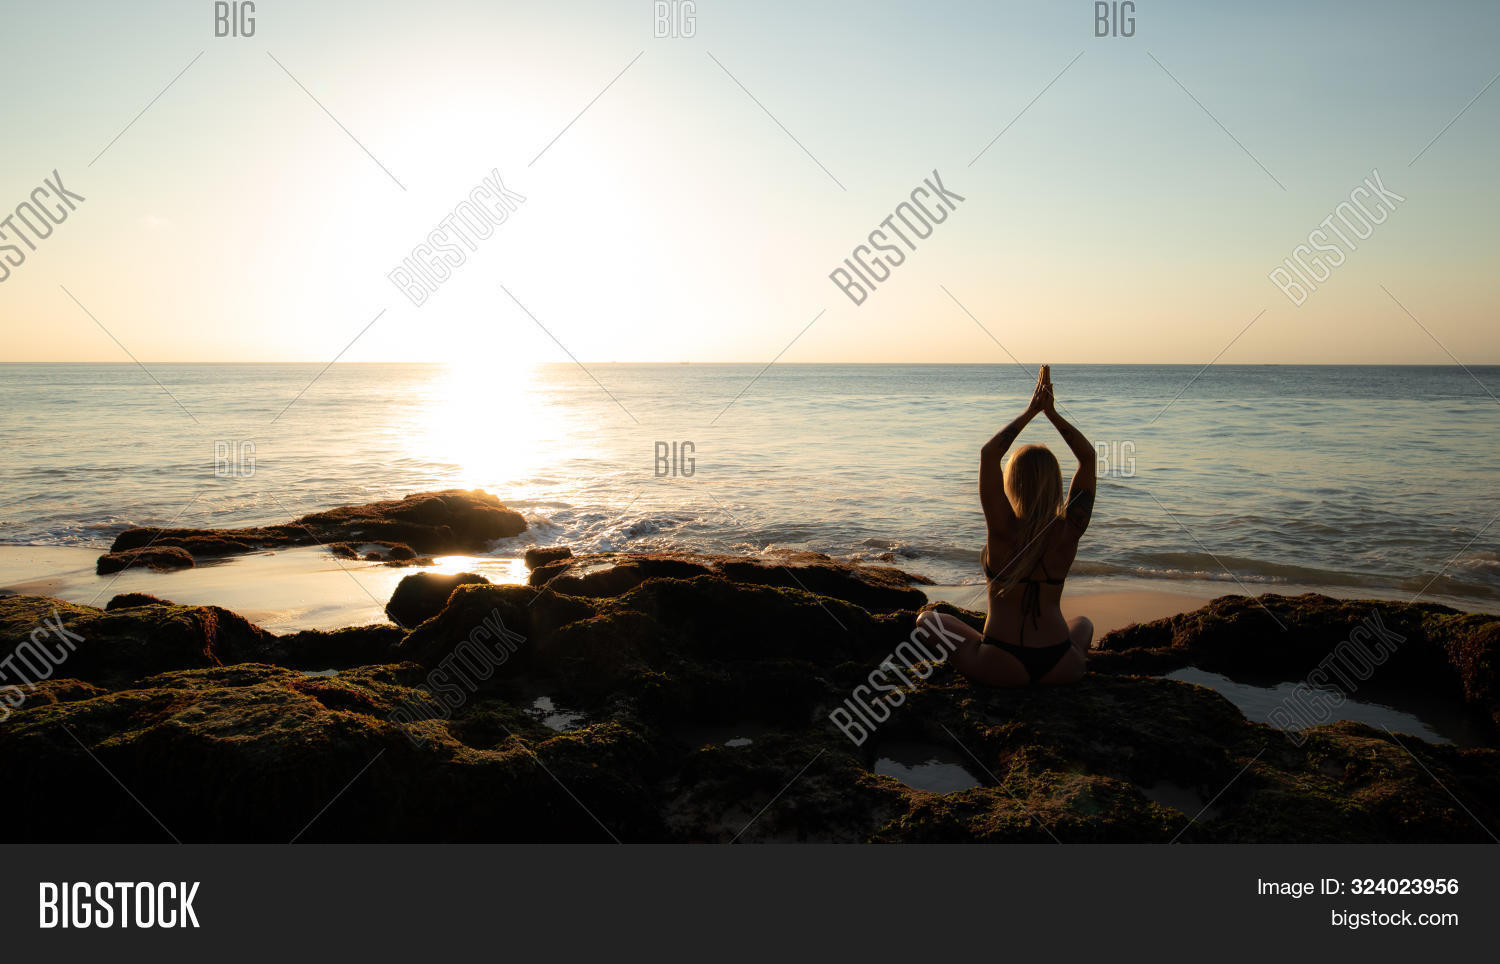 active,balance,bali,beach,beautiful,body,calm,exercise,female,golden,harmony,health,healthy,horizon,life,lifestyle,lotus,meditate,meditating,meditation,mind,mudra,namaste,nature,ocean,outdoor,peace,peaceful,person,pose,practice,pranayama,relax,relaxation,sea,silhouette,sitting,sky,spiritual,spirituality,sunset,tranquility,view,water,wellbeing,wellness,woman,yoga,young,zen